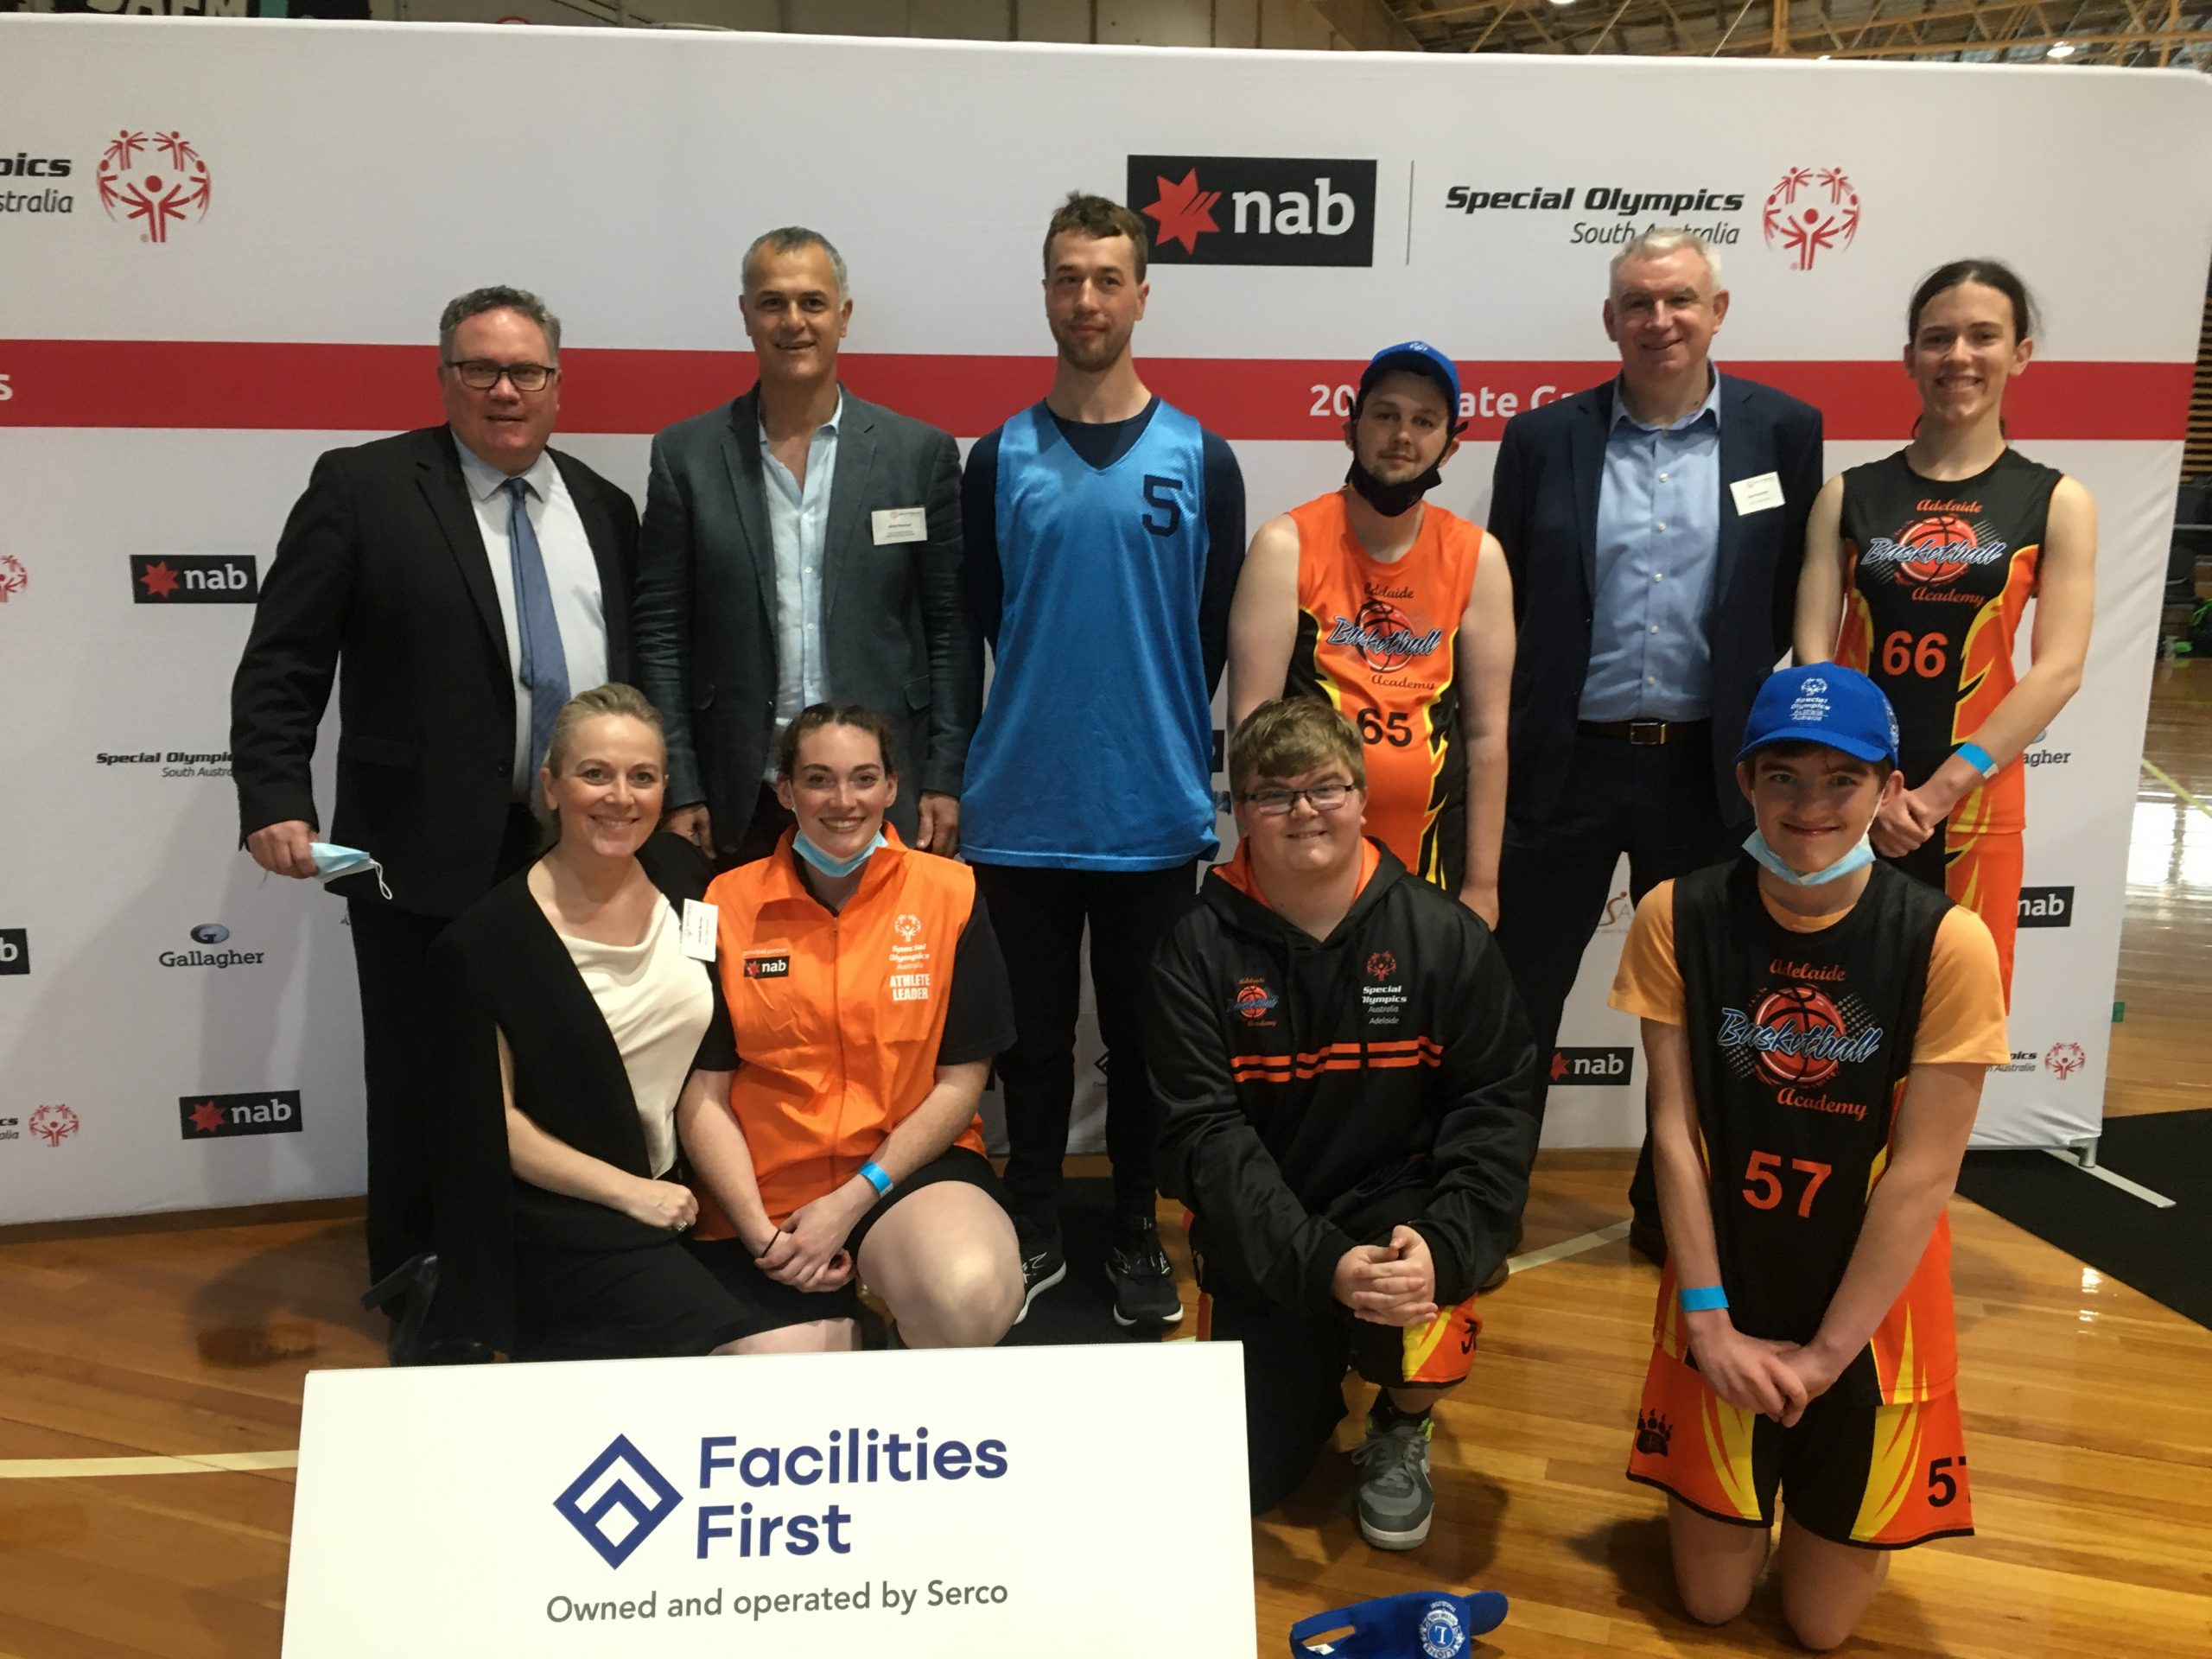 facilities-first-supports-special-olympics